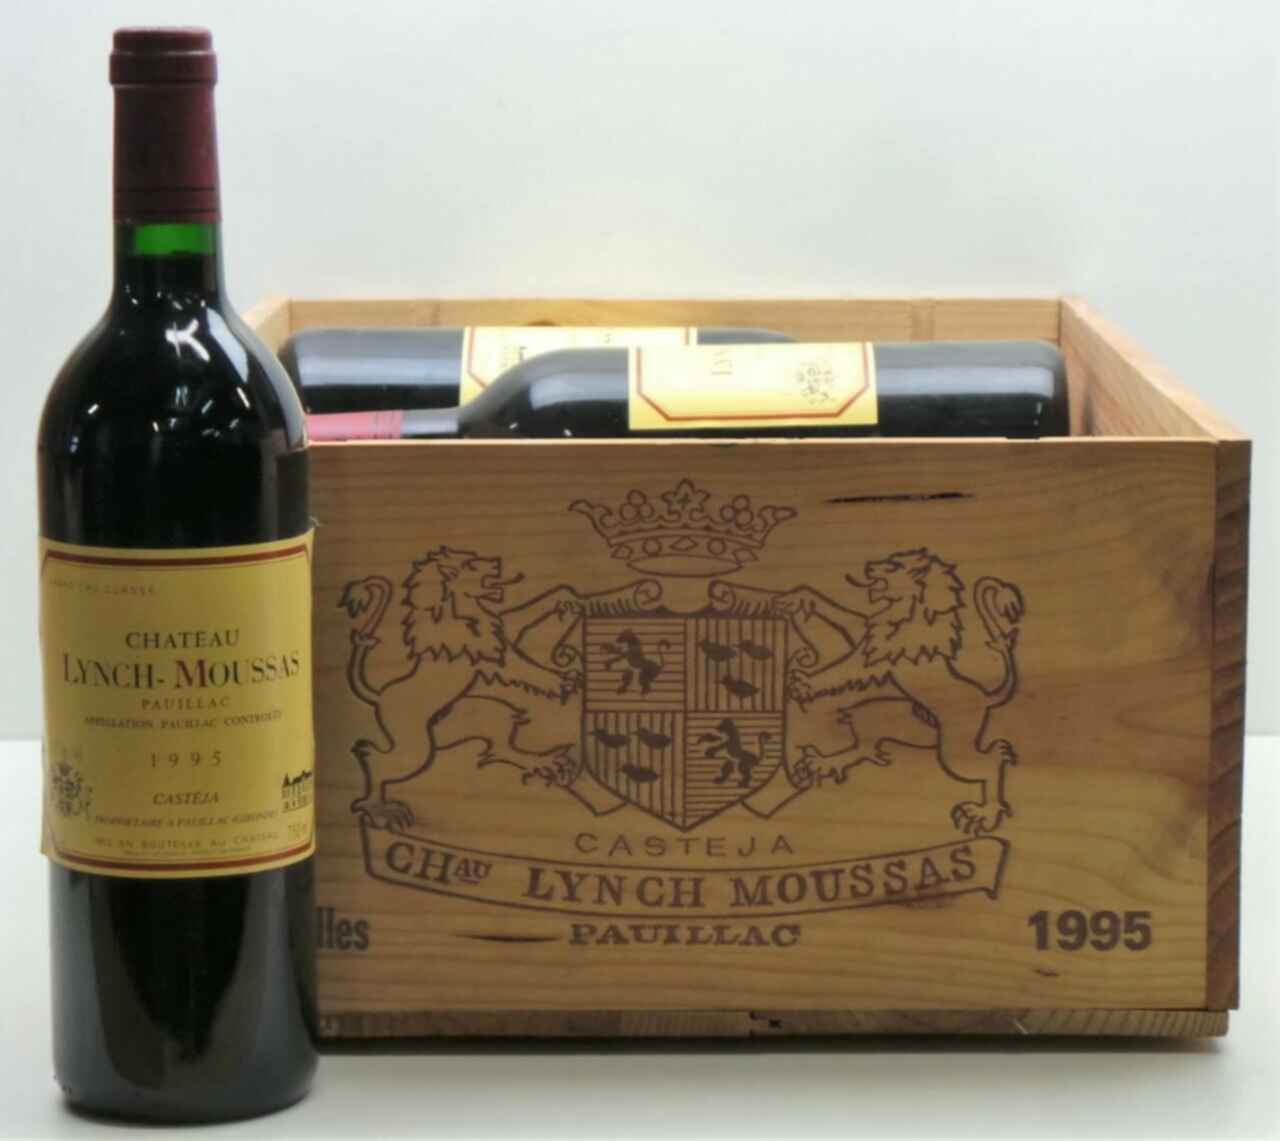 Chateau Lynch Moussas 1995